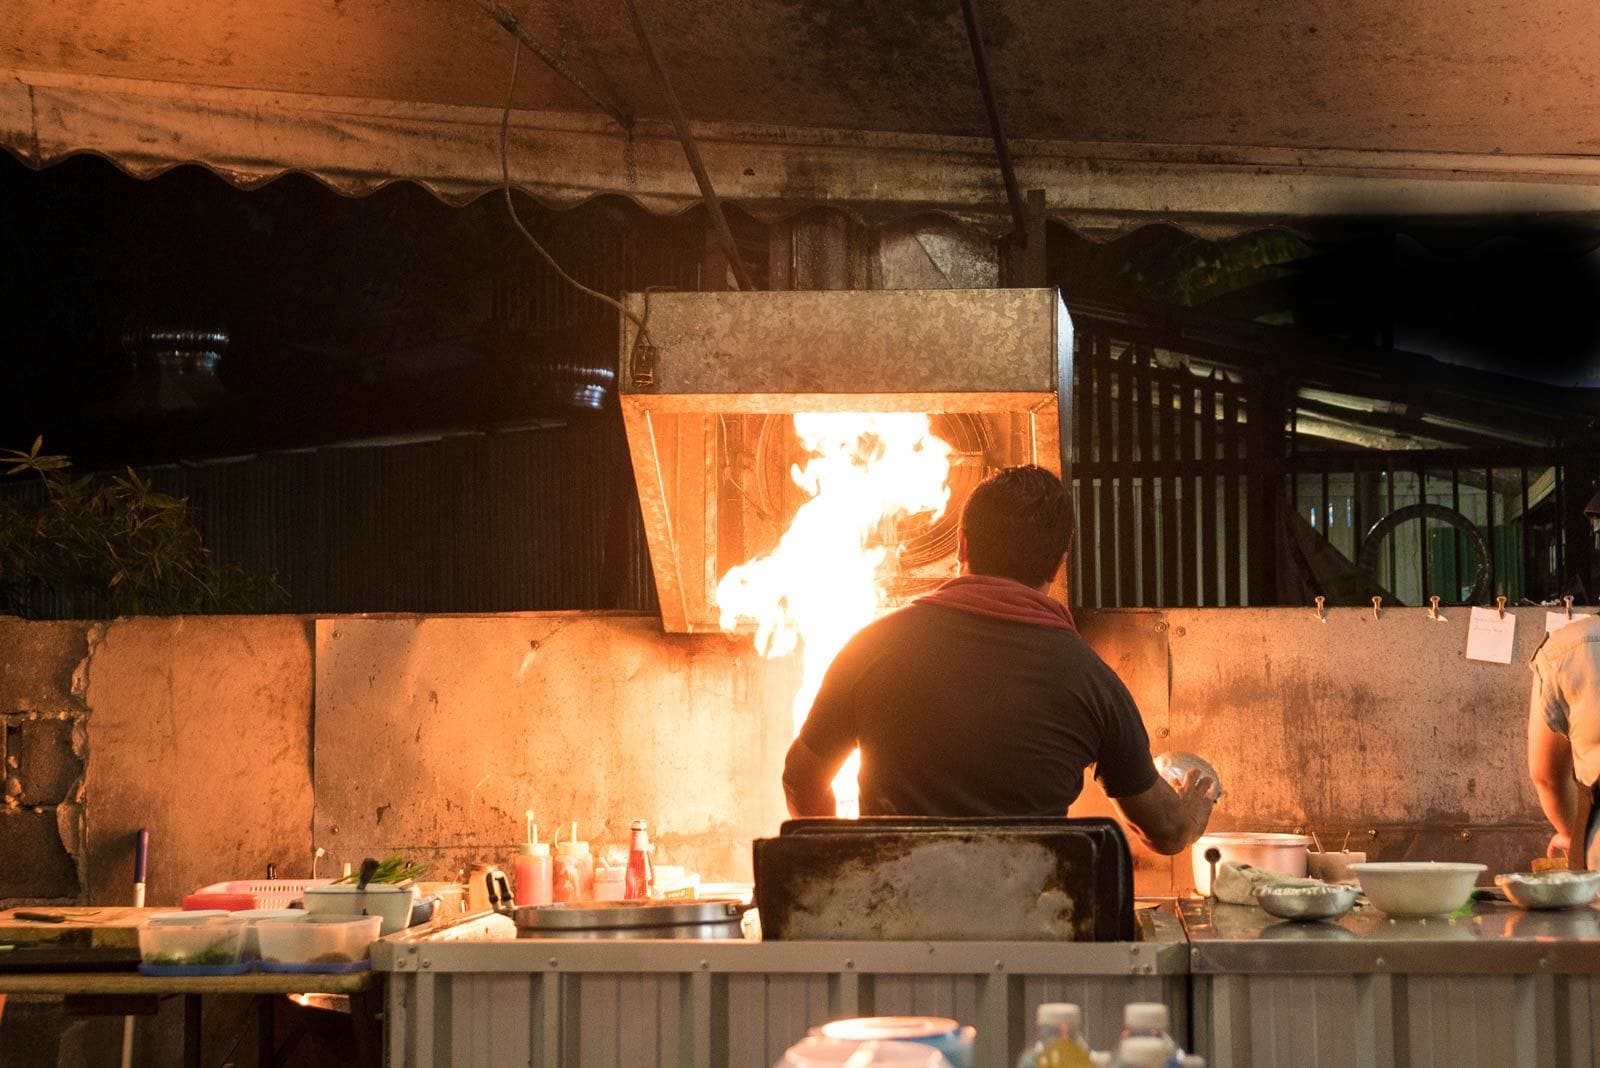 The fire chef of Phuket